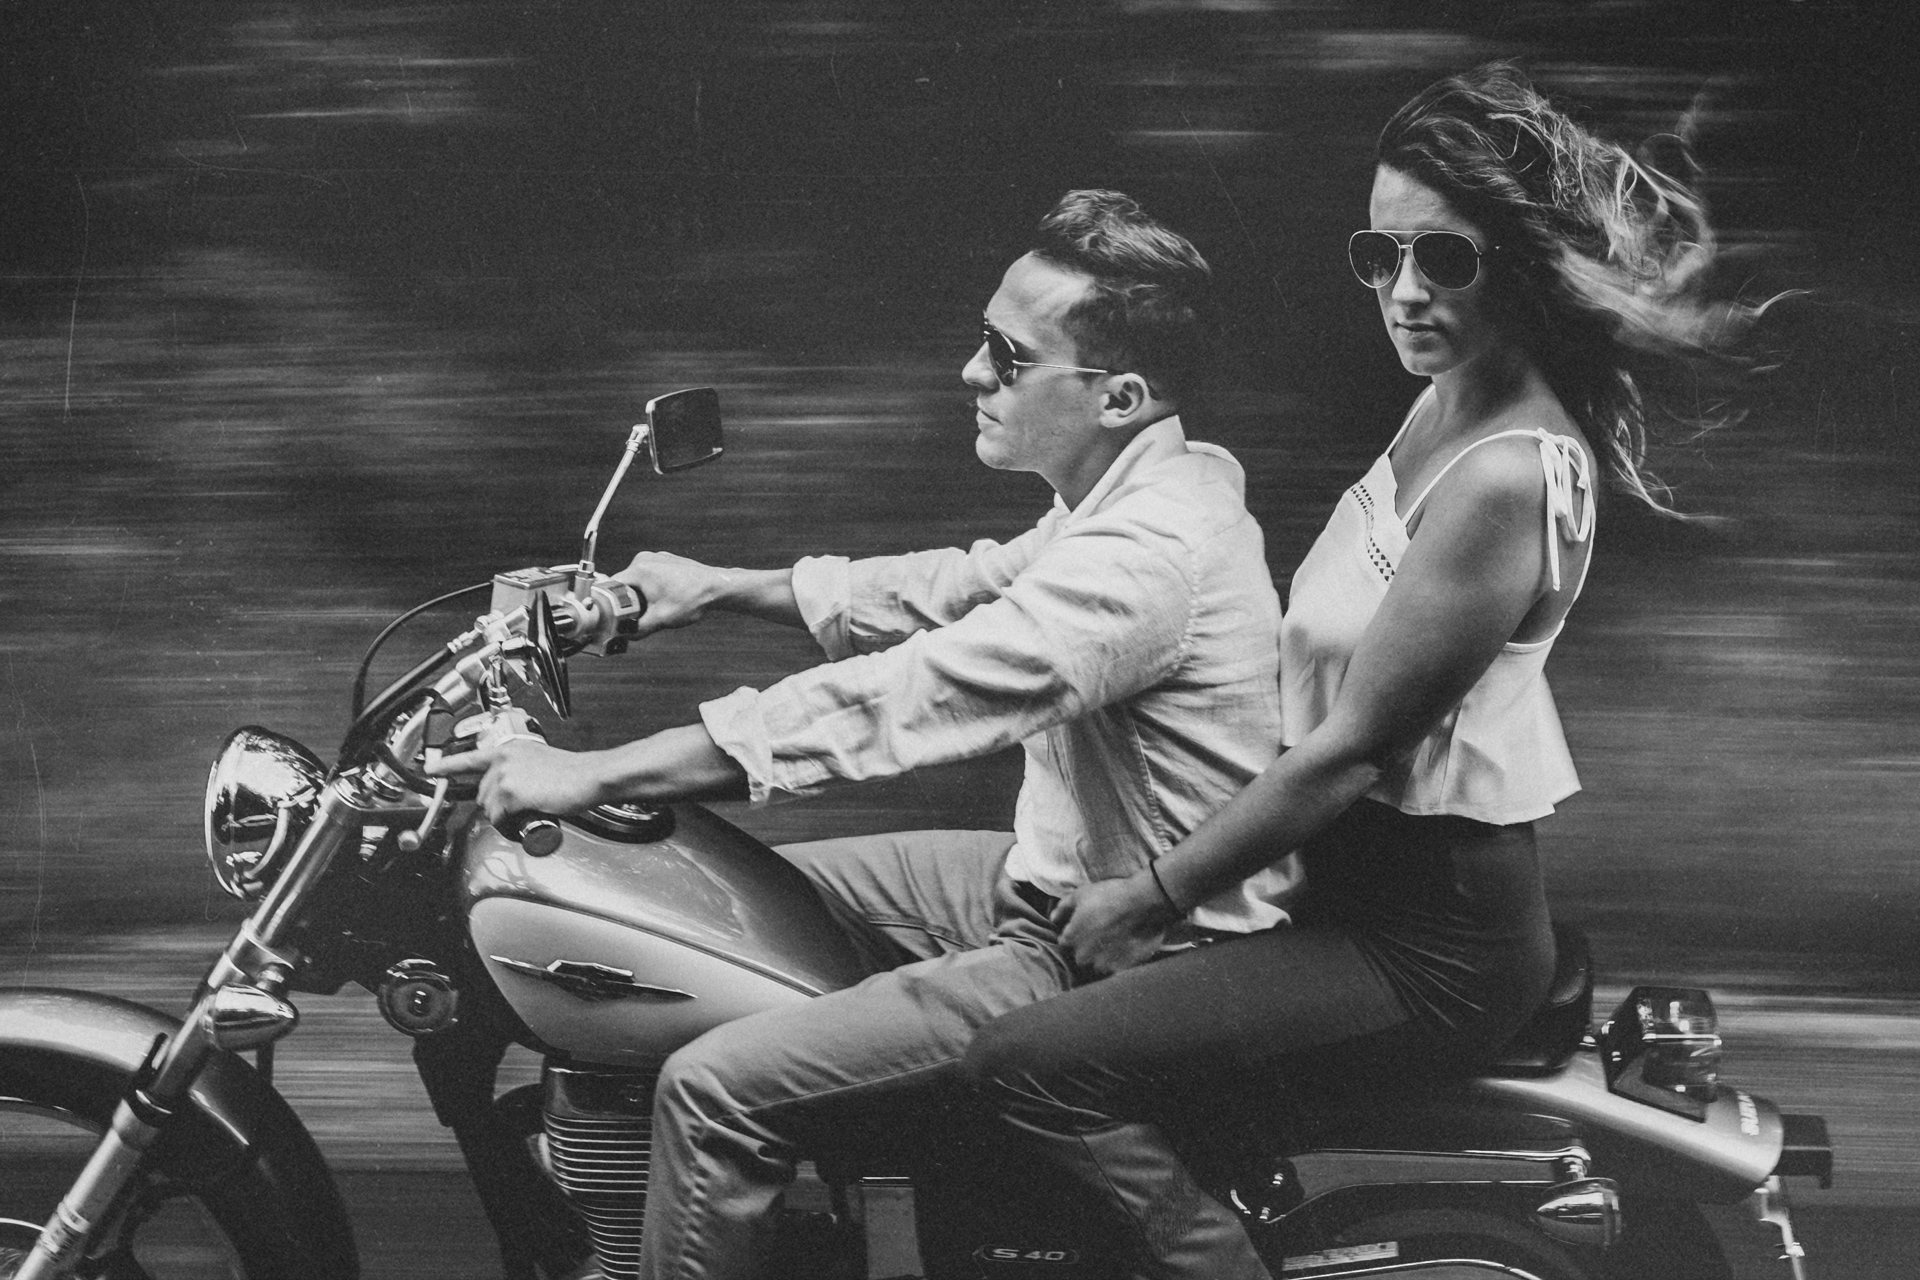 Motorcycle-engagement-photos01